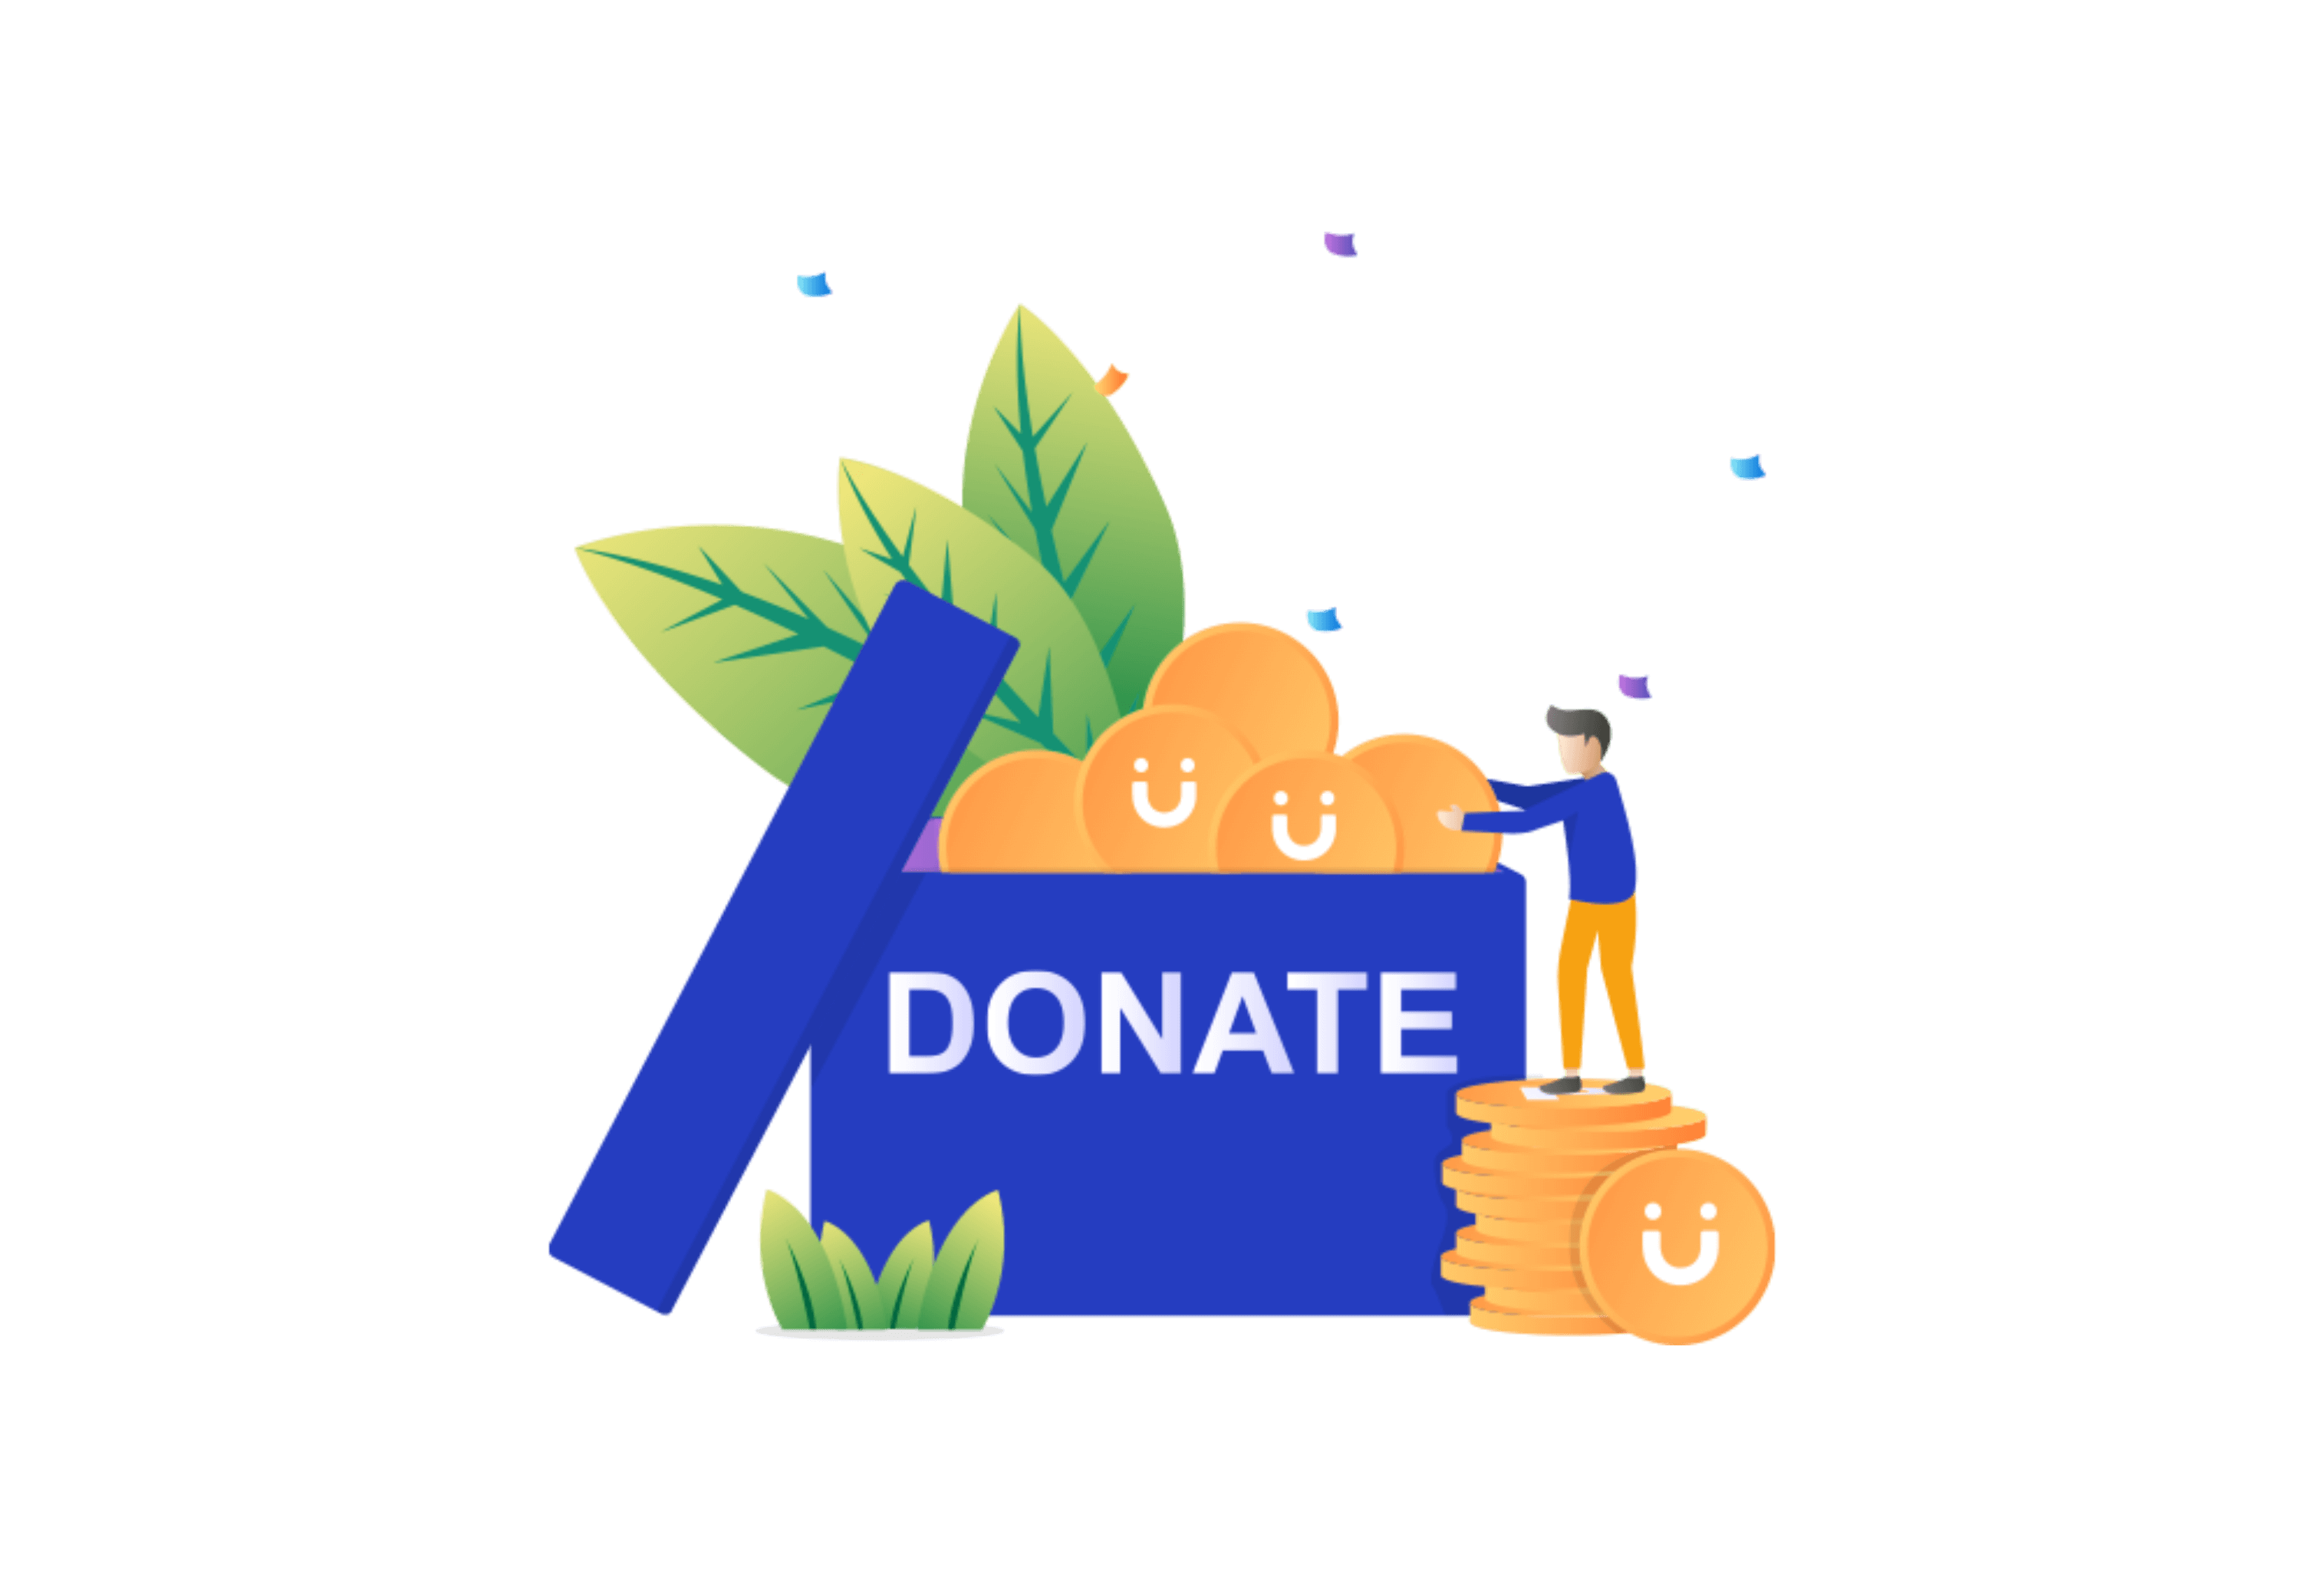 https://qauseuat.s3.ap-south-1.amazonaws.com/ngo/about/ngo-donor.png